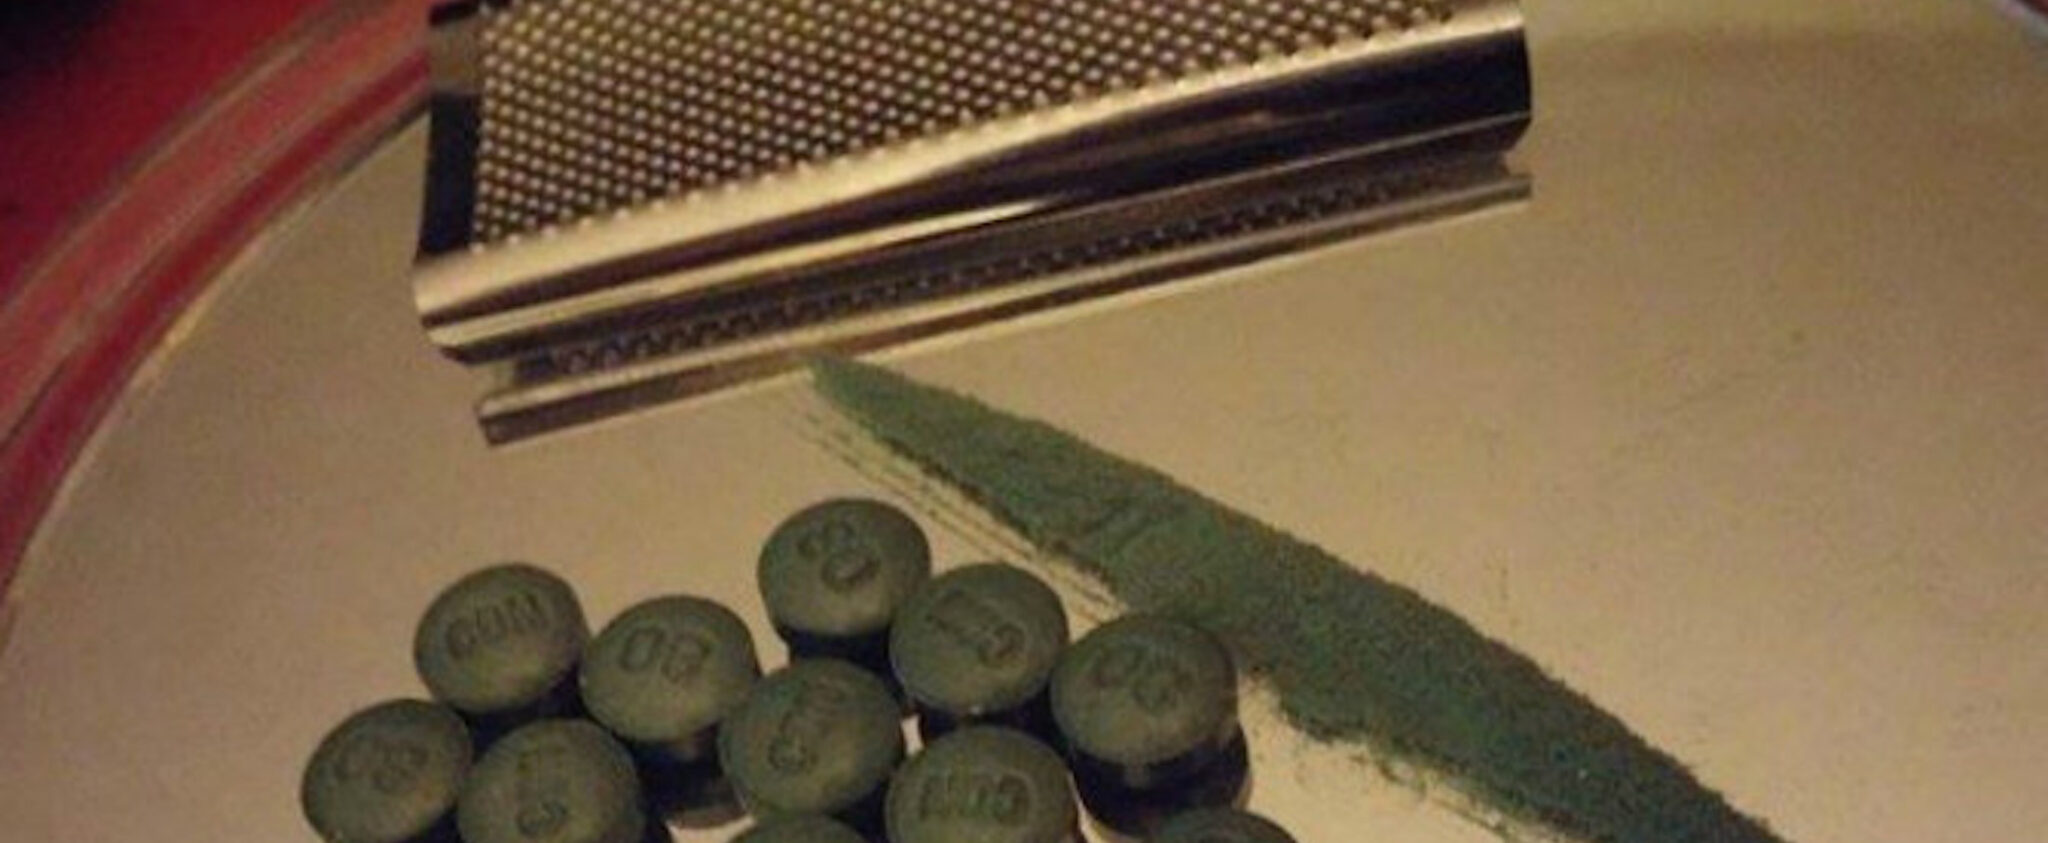 Green W-18 pills and powder spread over a mirror